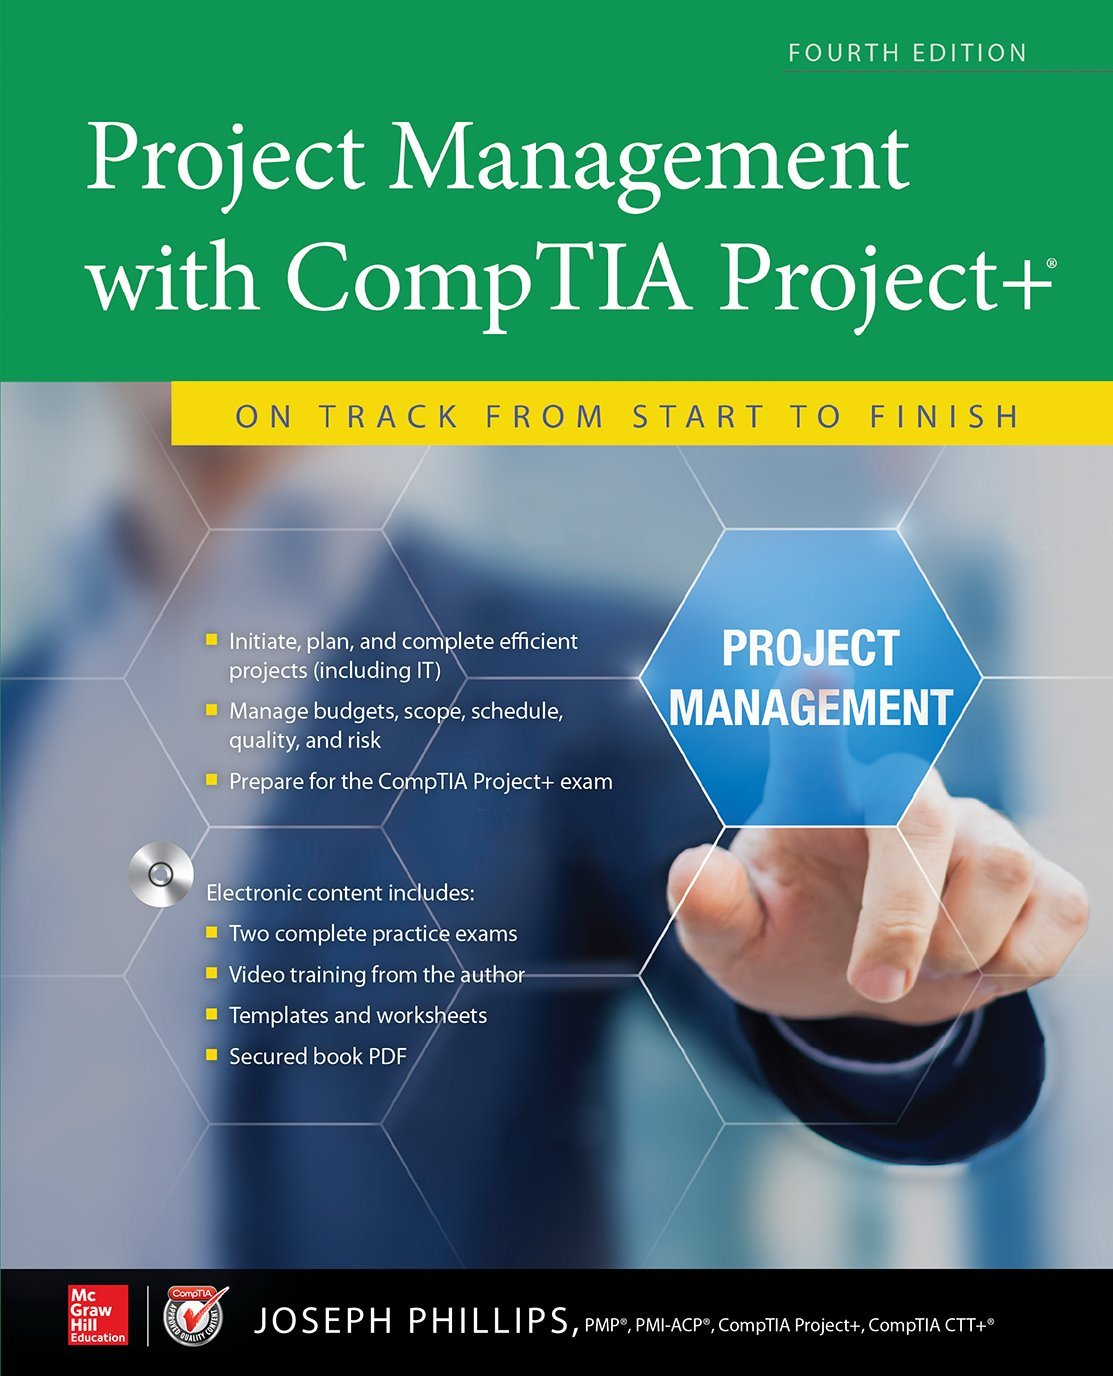 Project management with comptia project on track from start to project management with comptia project on track from start to finish fourth edition joseph phillips 9781259860300 books amazon xflitez Image collections